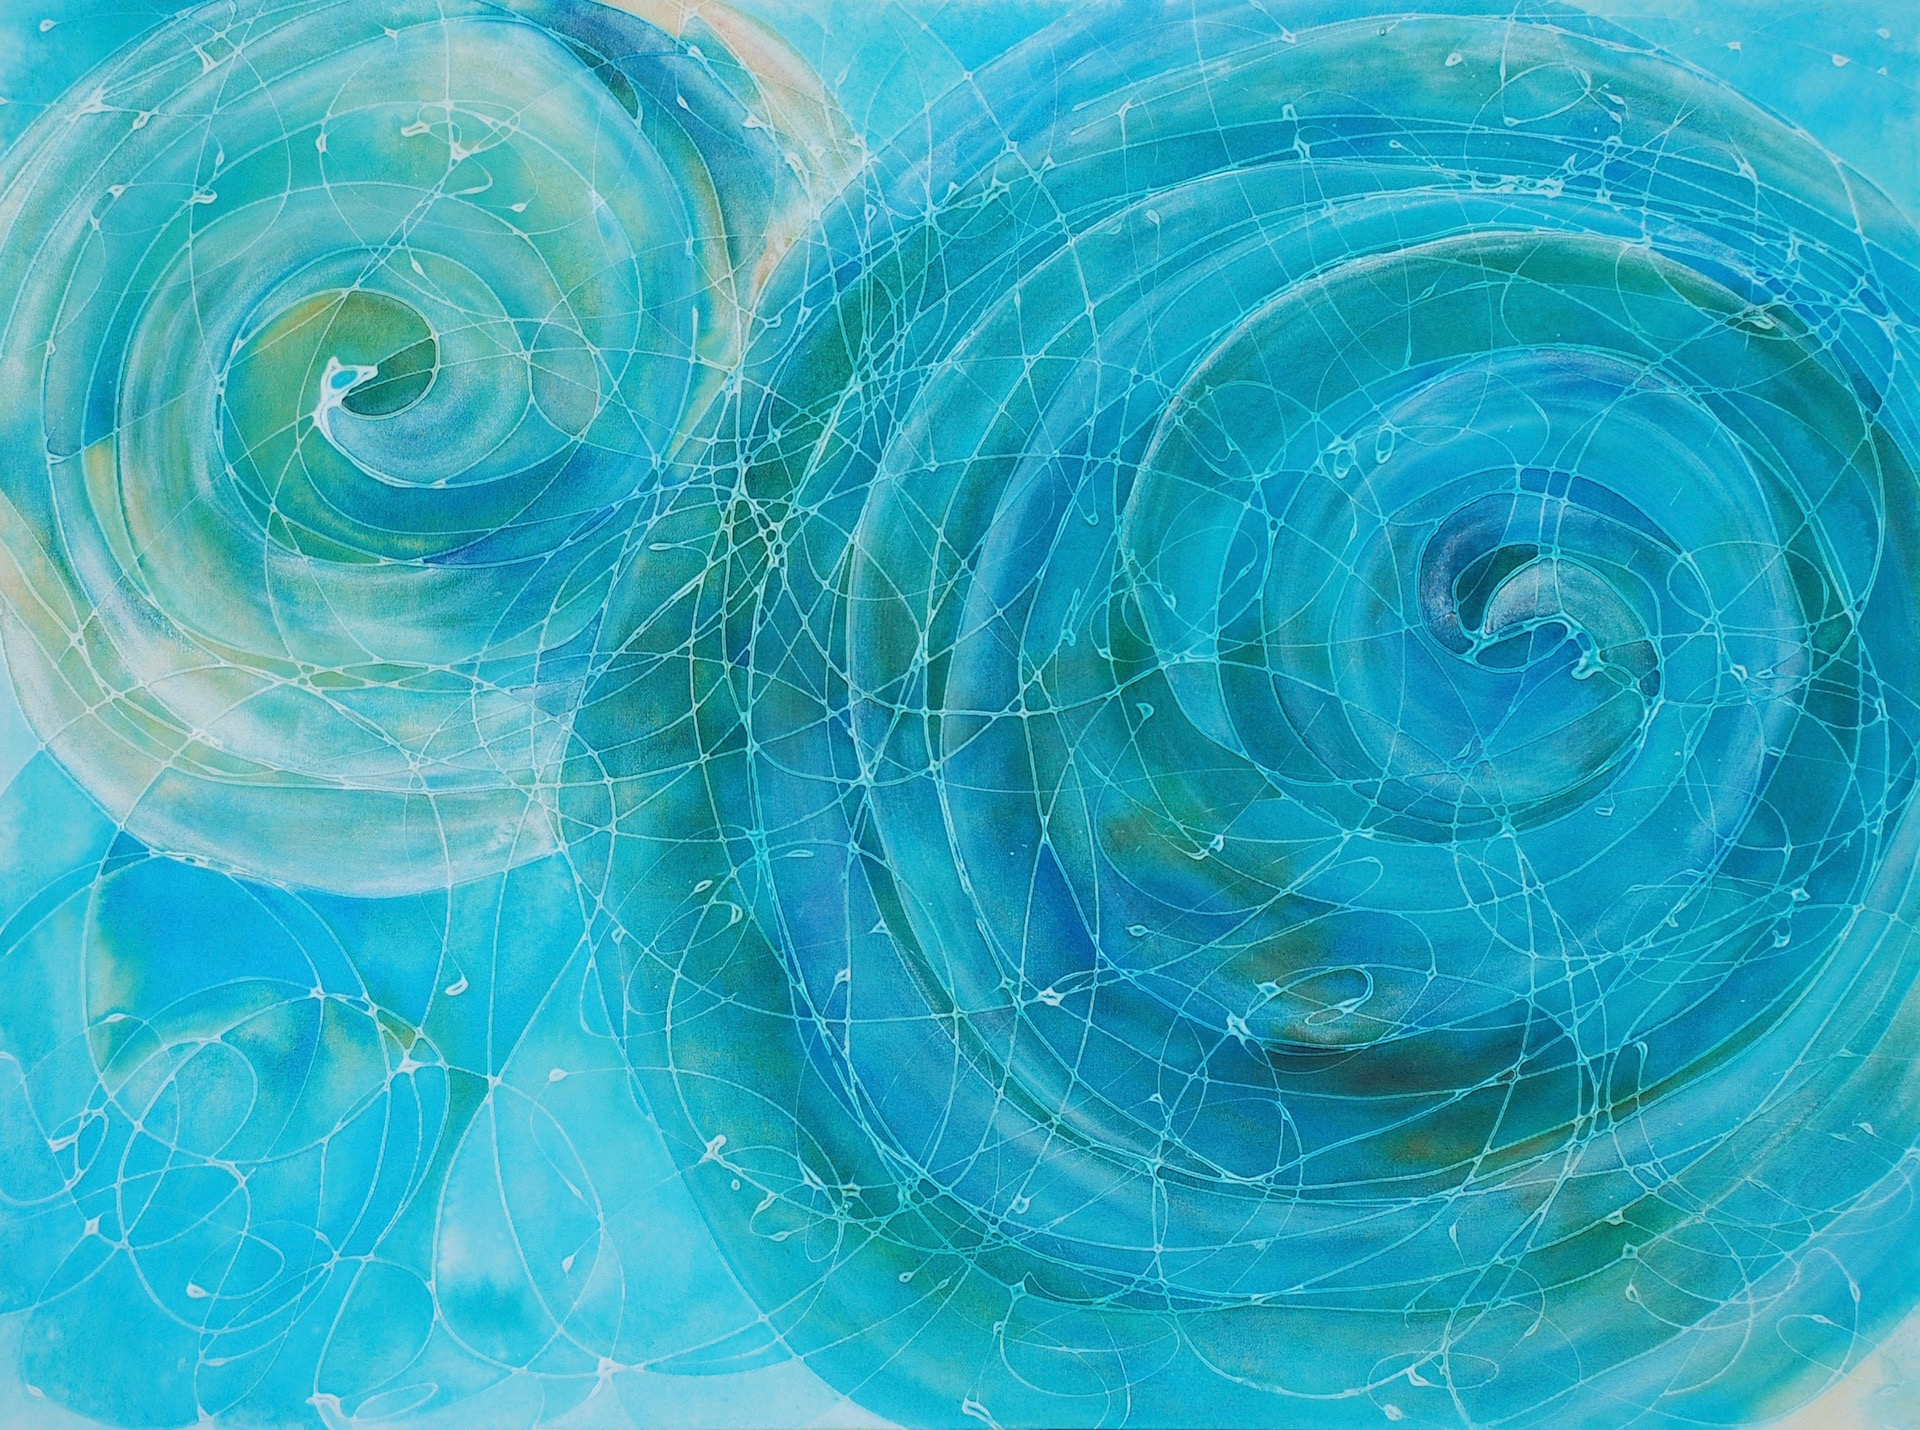 Gravitational Waves 36 x 48